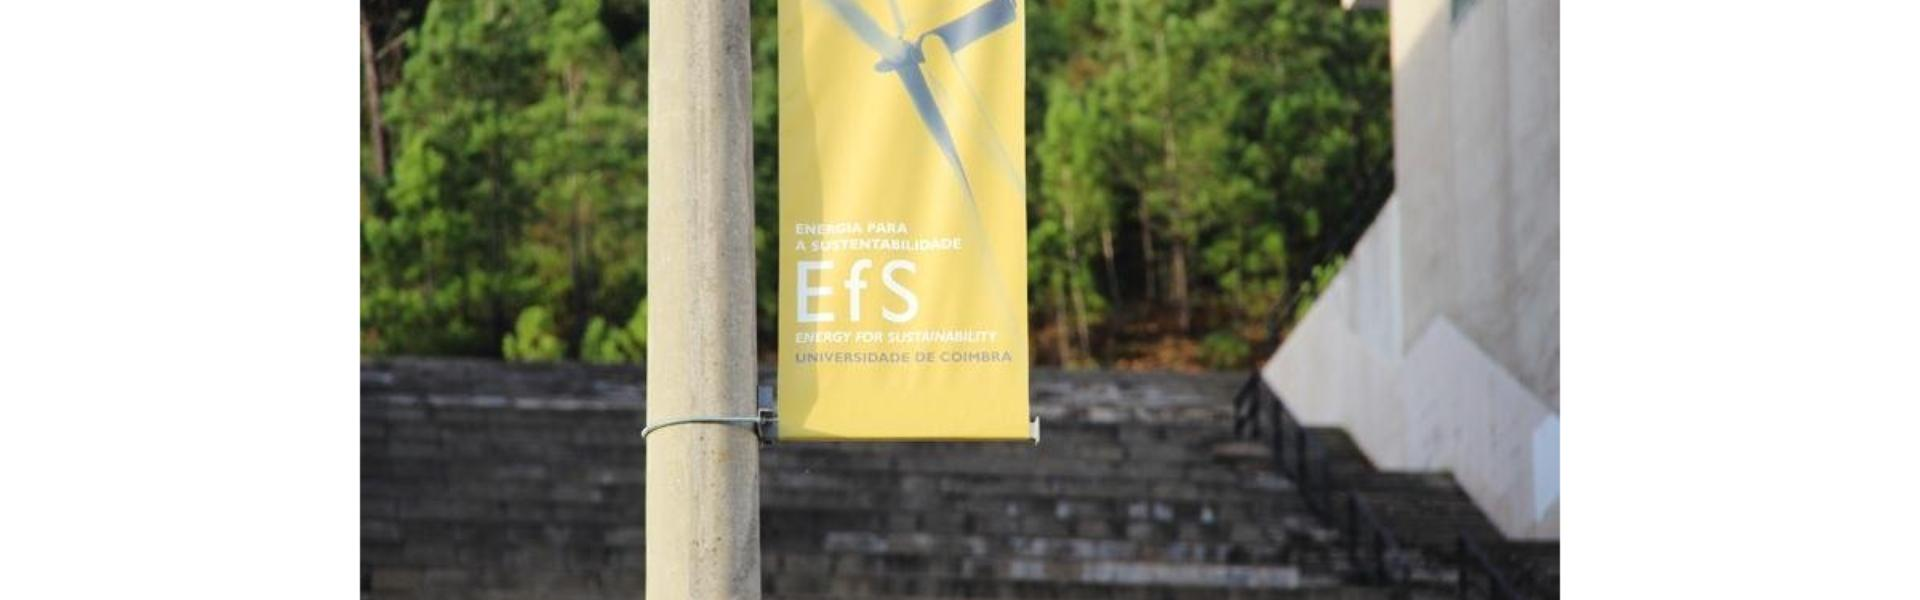 "The EfS Initiative part of the collaborative network on the project ""European Campus of University Cities - EC2U"""